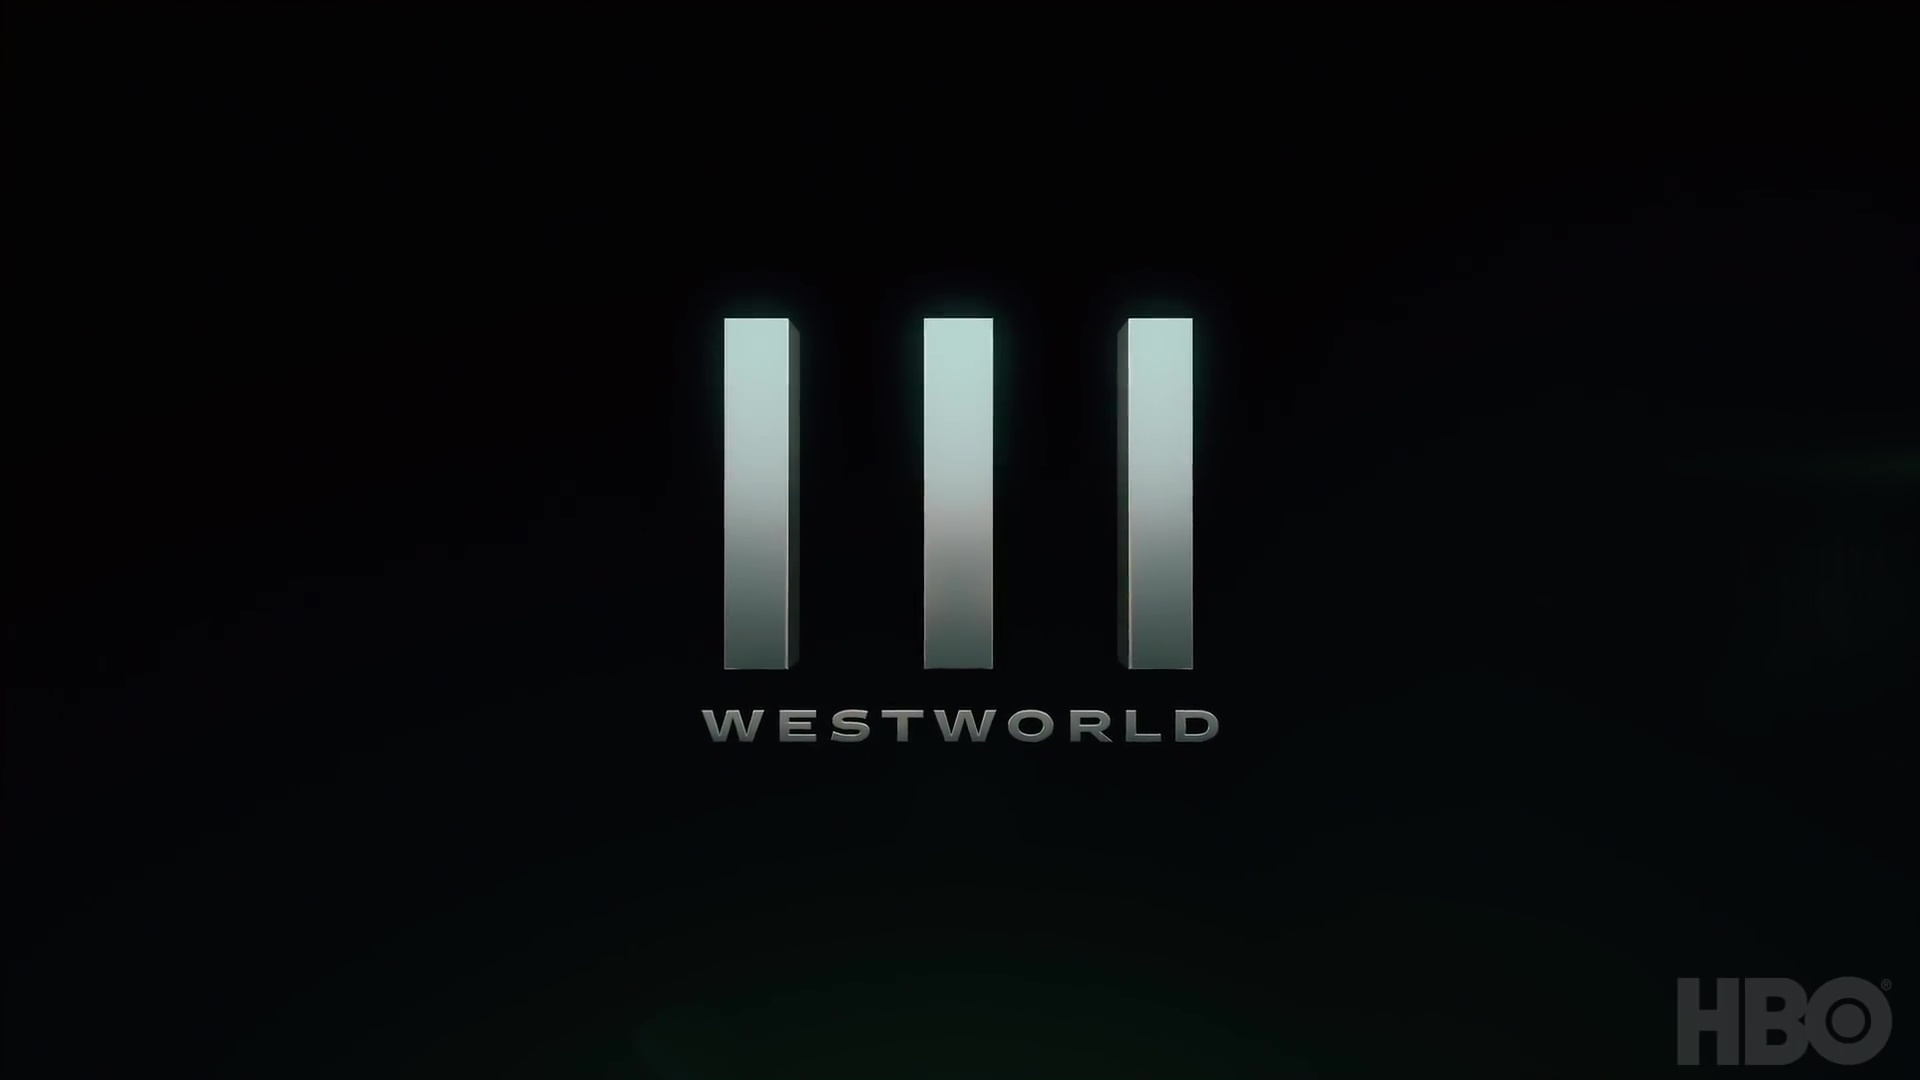 Saddle Up, The Westworld Season 3 Teaser Trailer is Here!